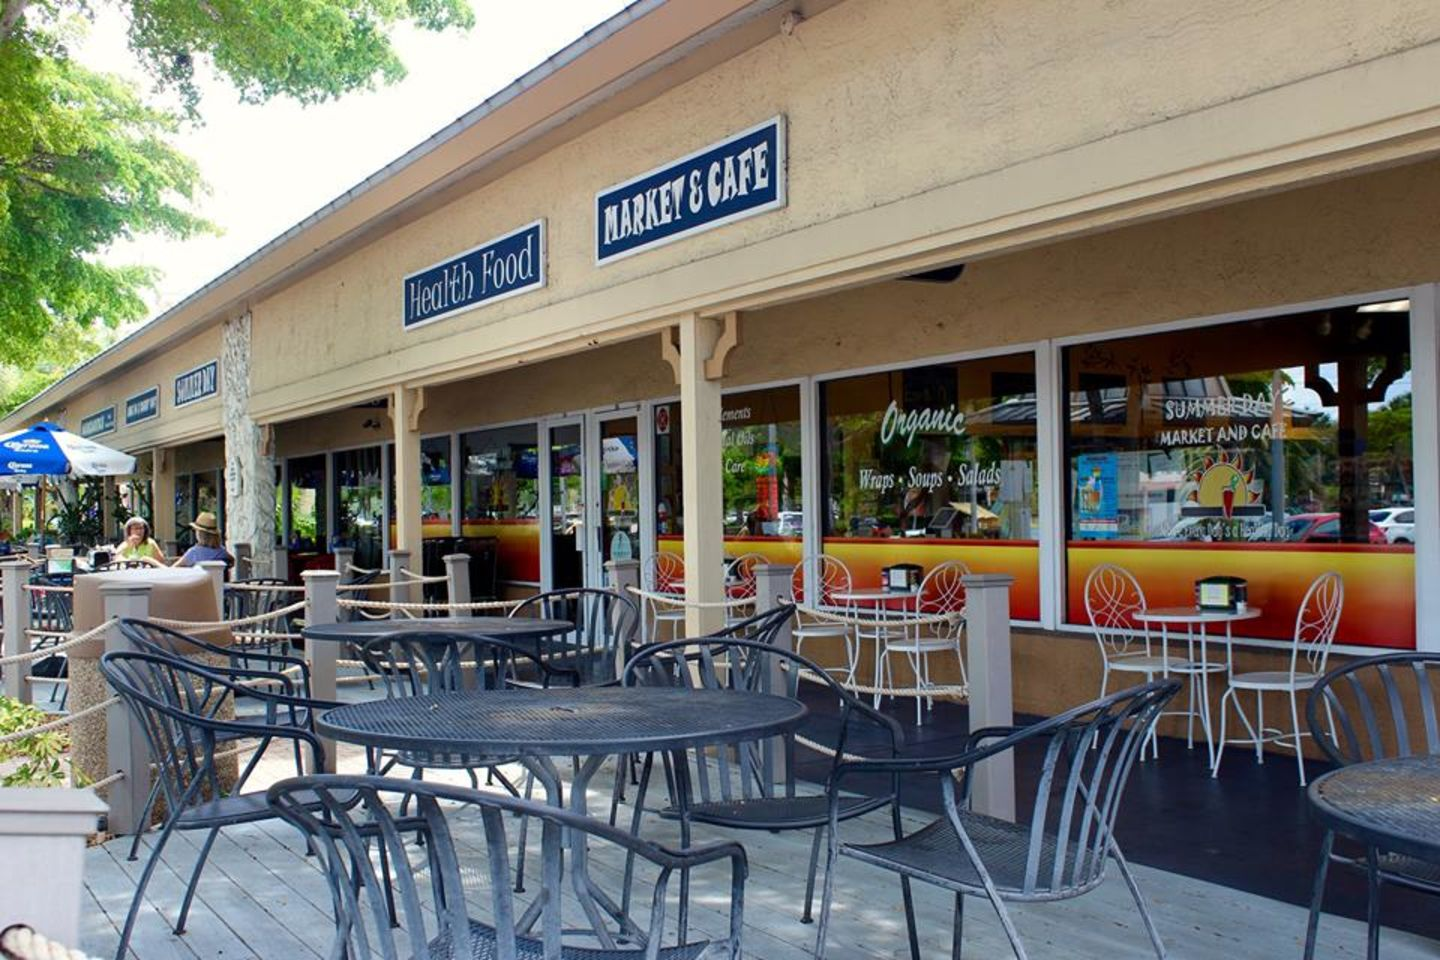 A photo of Summer Day Market & Cafe